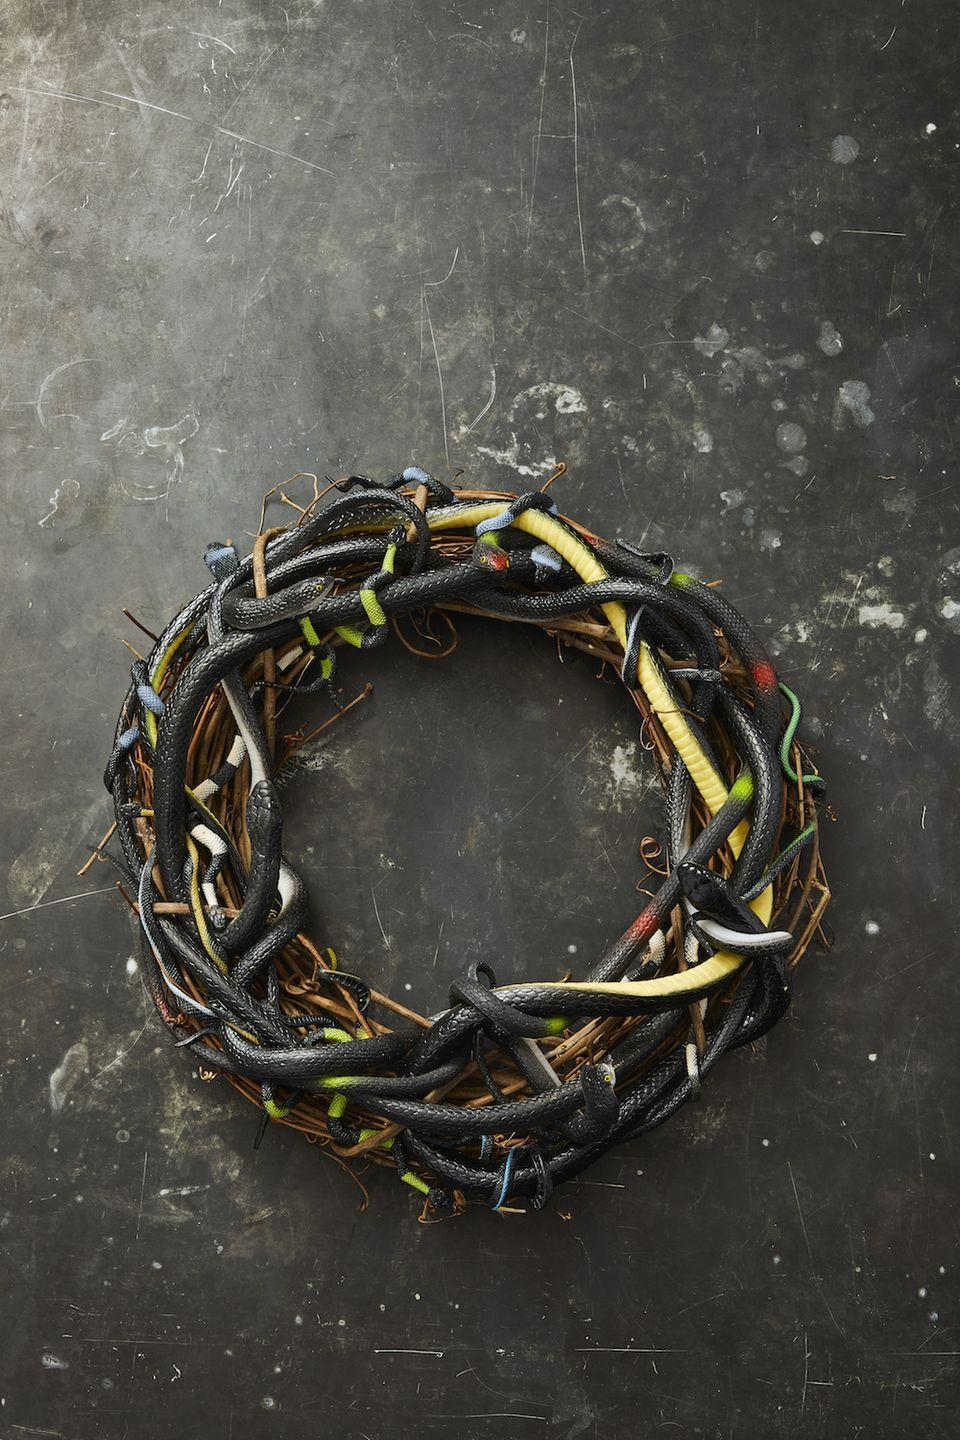 """<p>Your neighbors will get a kick out of this snake wreath, which is simple enough to make all on your own. Just glue a variety of plastic snakes directly onto a wreath form made of twigs to achieve the look. </p><p><a class=""""link rapid-noclick-resp"""" href=""""https://go.redirectingat.com?id=74968X1596630&url=https%3A%2F%2Fwww.orientaltrading.com%2Fvinyl-realistic-snakes-a2-39_9600.fltr&sref=https%3A%2F%2Fwww.goodhousekeeping.com%2Fholidays%2Fhalloween-ideas%2Fg32948621%2Fhalloween-door-decorations%2F"""" rel=""""nofollow noopener"""" target=""""_blank"""" data-ylk=""""slk:SHOP TOY SNAKES"""">SHOP TOY SNAKES</a></p>"""